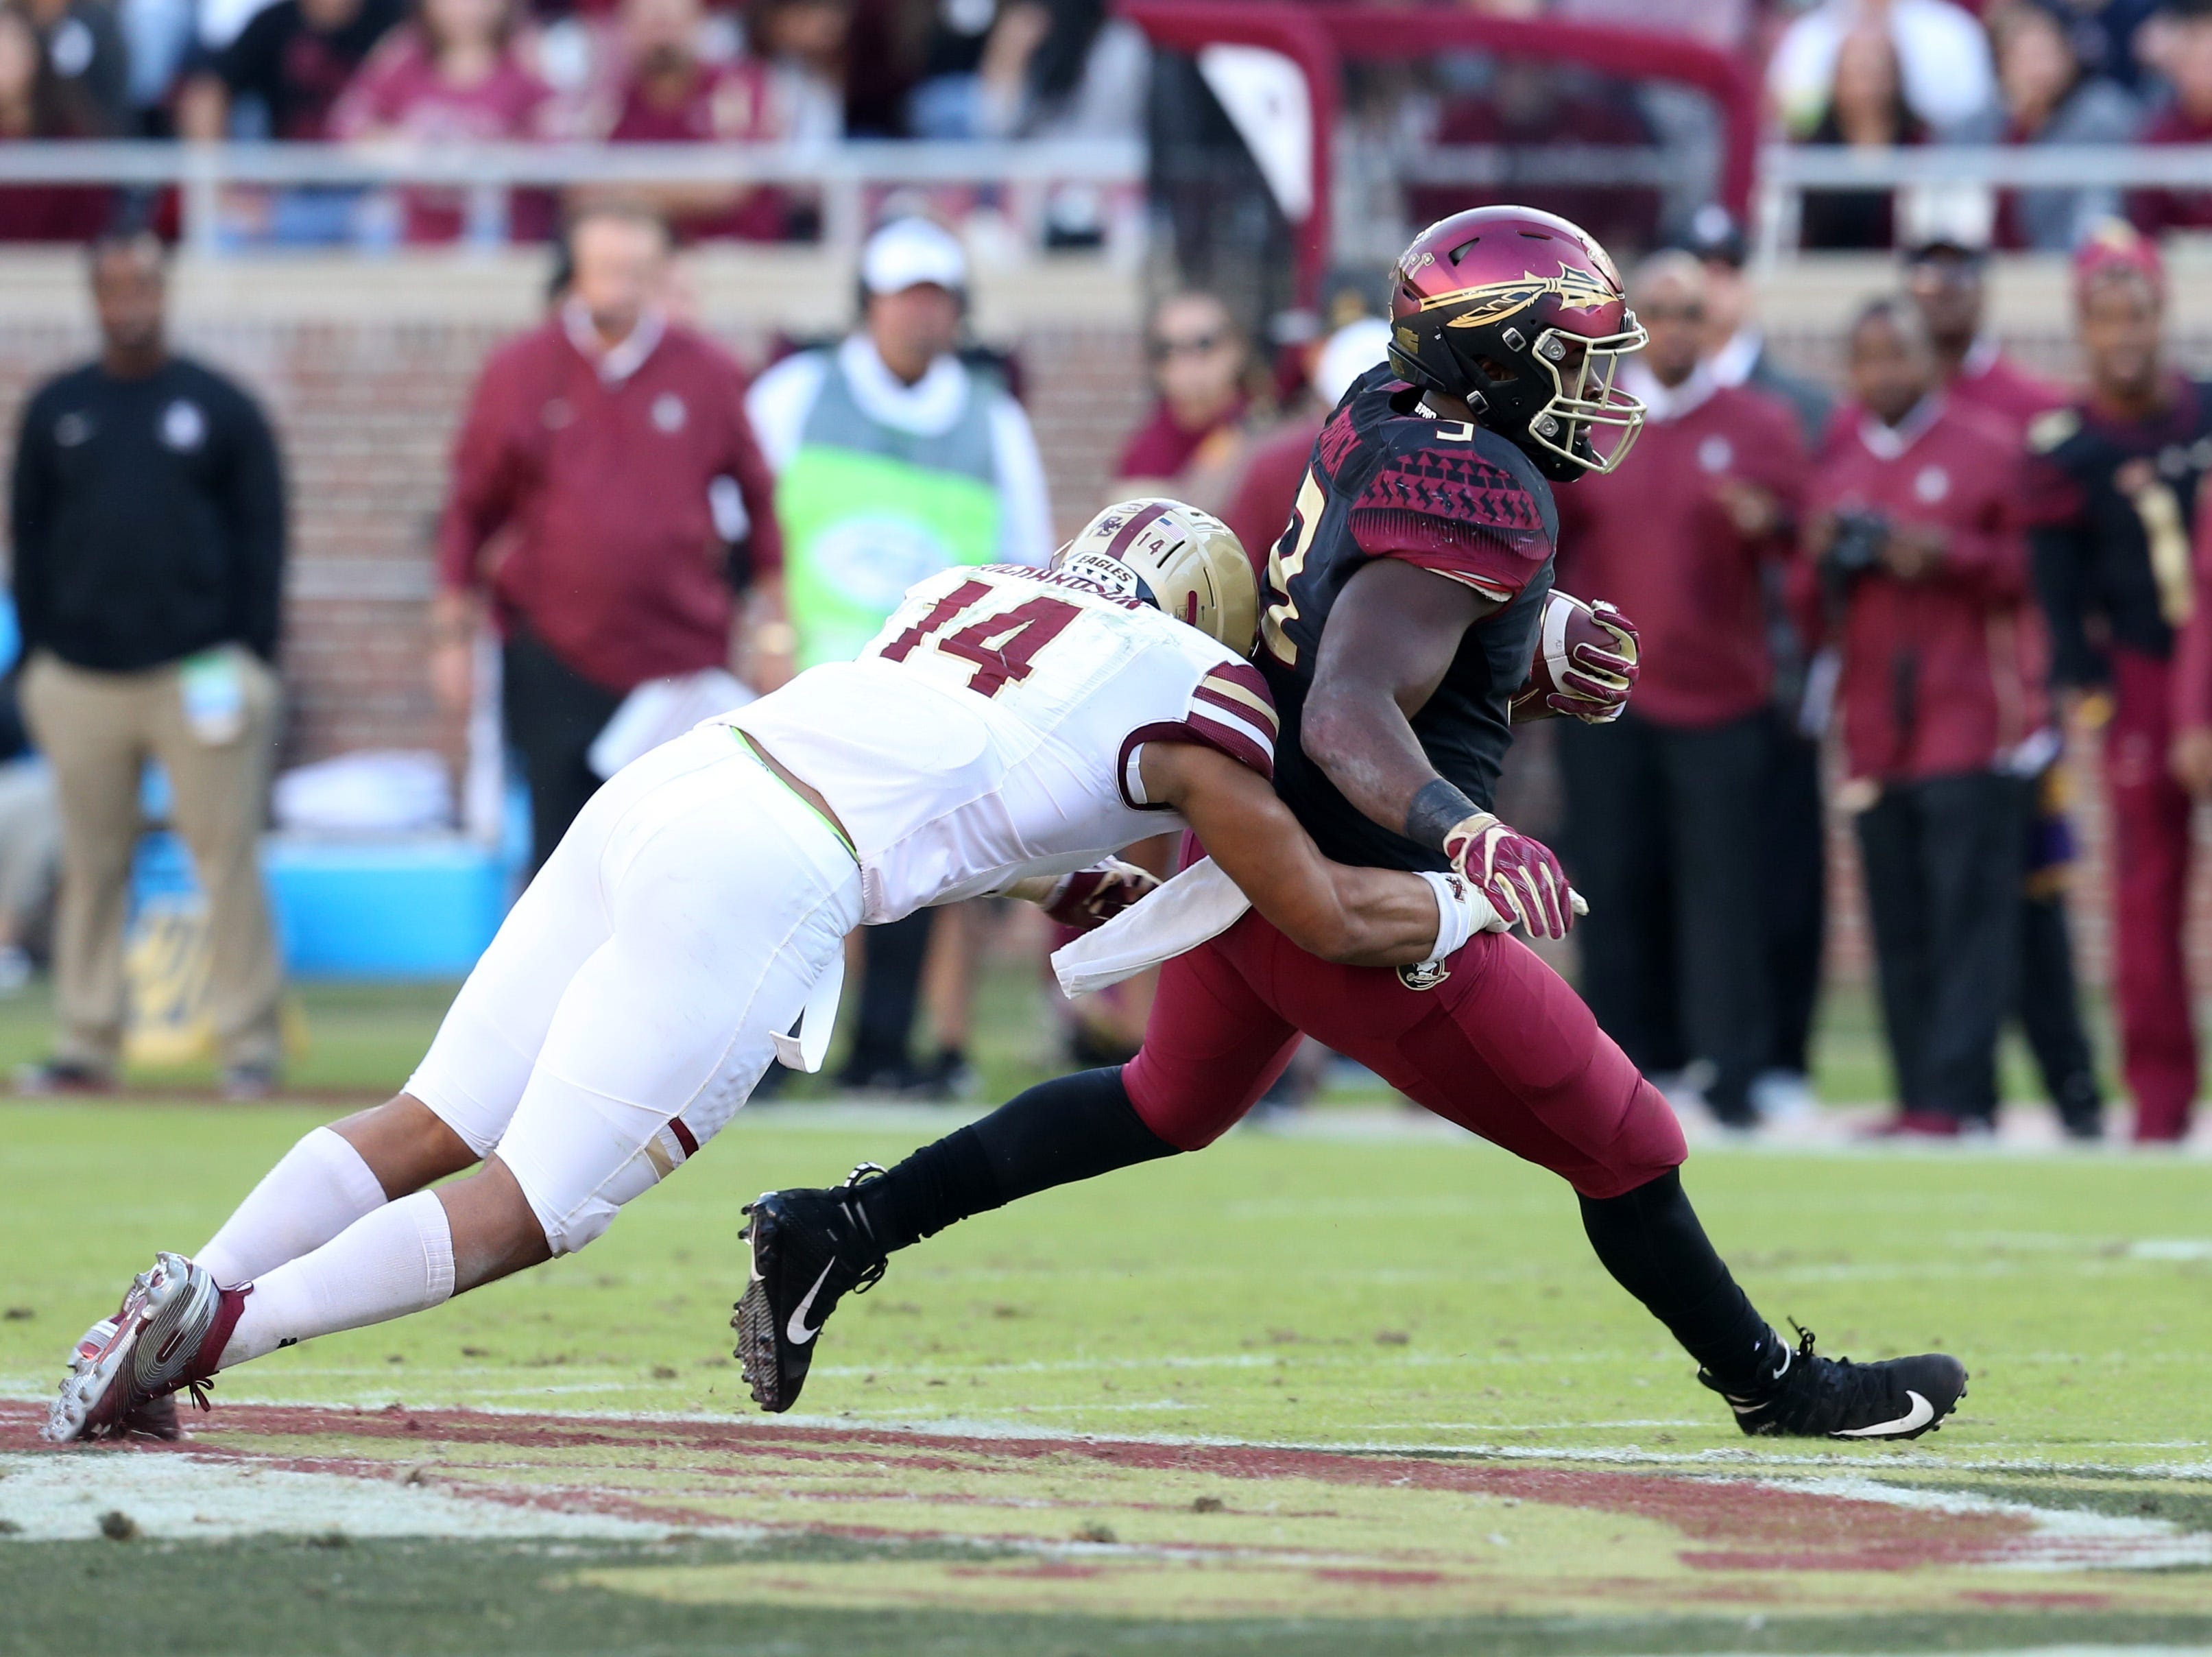 Florida State Seminoles running back Jacques Patrick (9) tries to get every yard possible before Boston College Eagles linebacker Max Richardson (14) takes him down as the Florida State Seminoles face off against the Boston College Eagles at Doak S. Campbell Stadium, Saturday, Nov. 17, 2018.